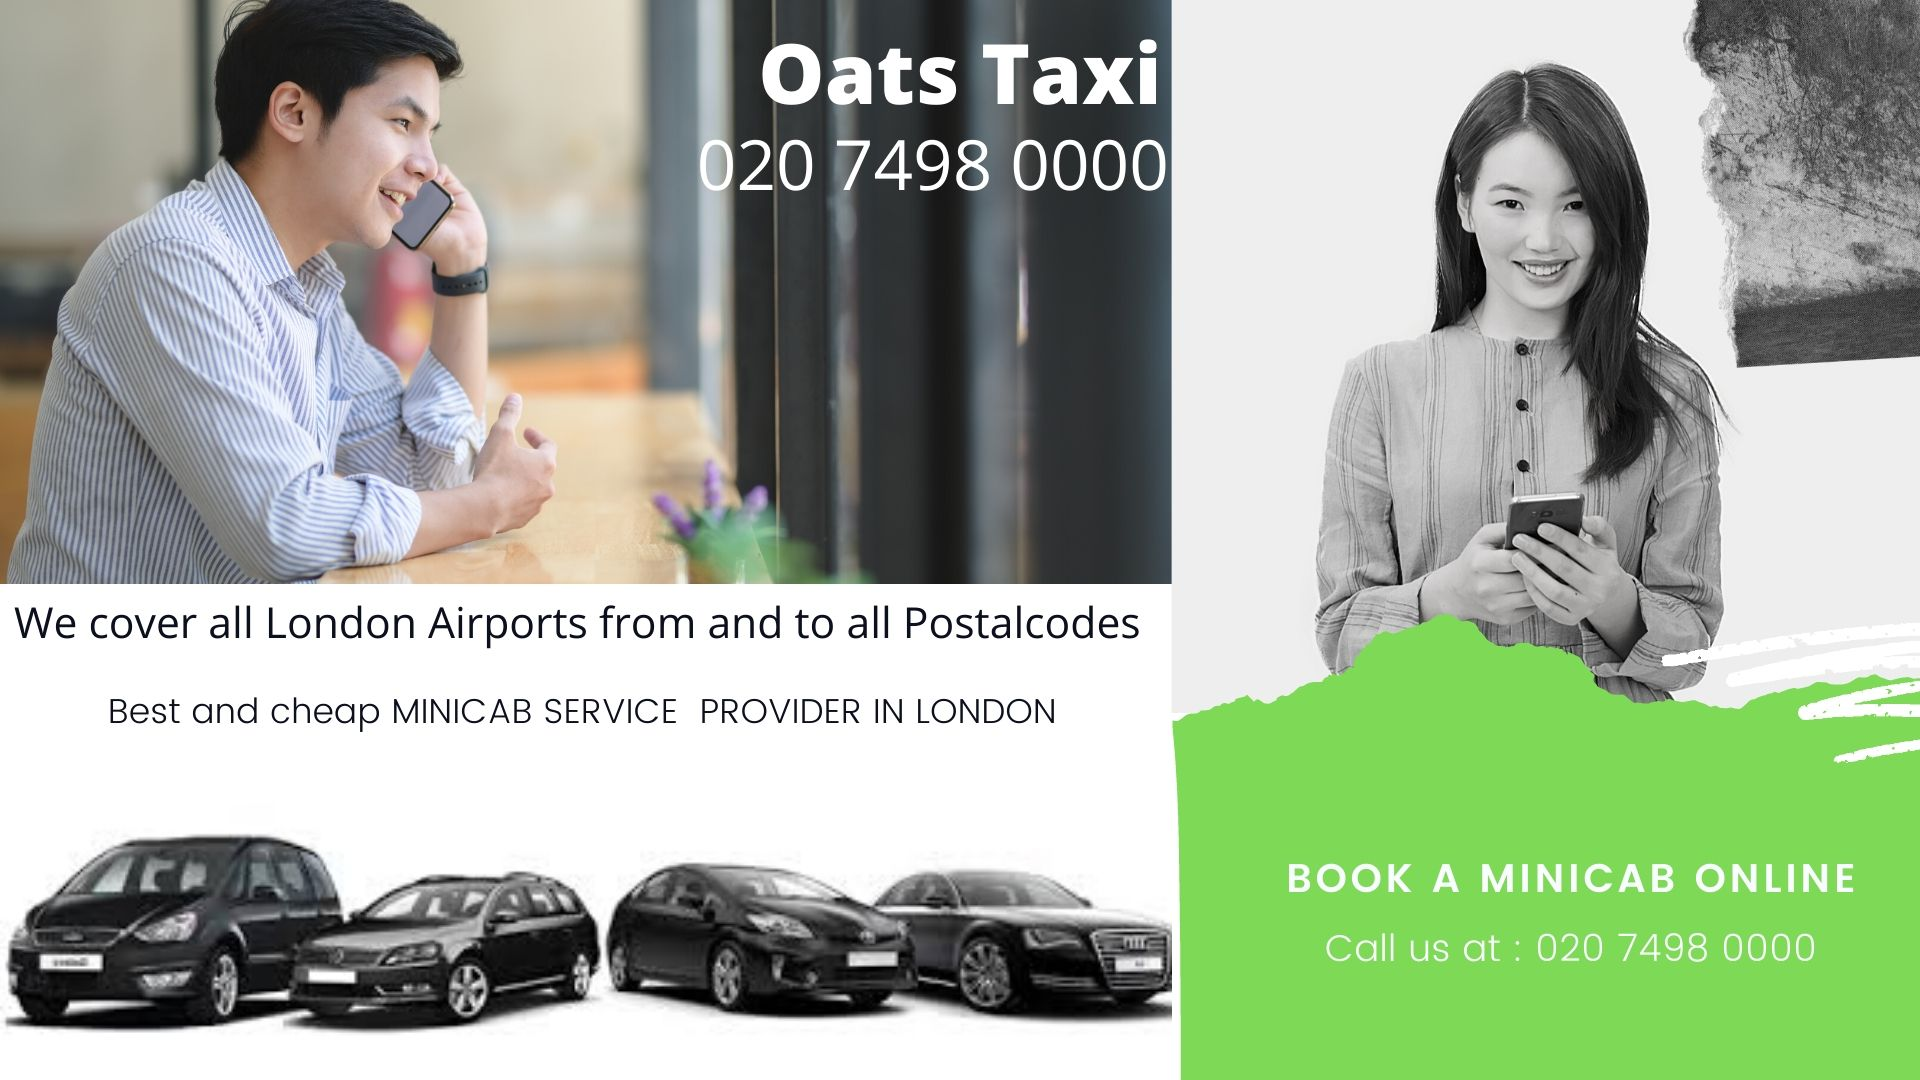 Nearest Taxi Office in Southfields | Gatwick Airport | Call now : 02074980000